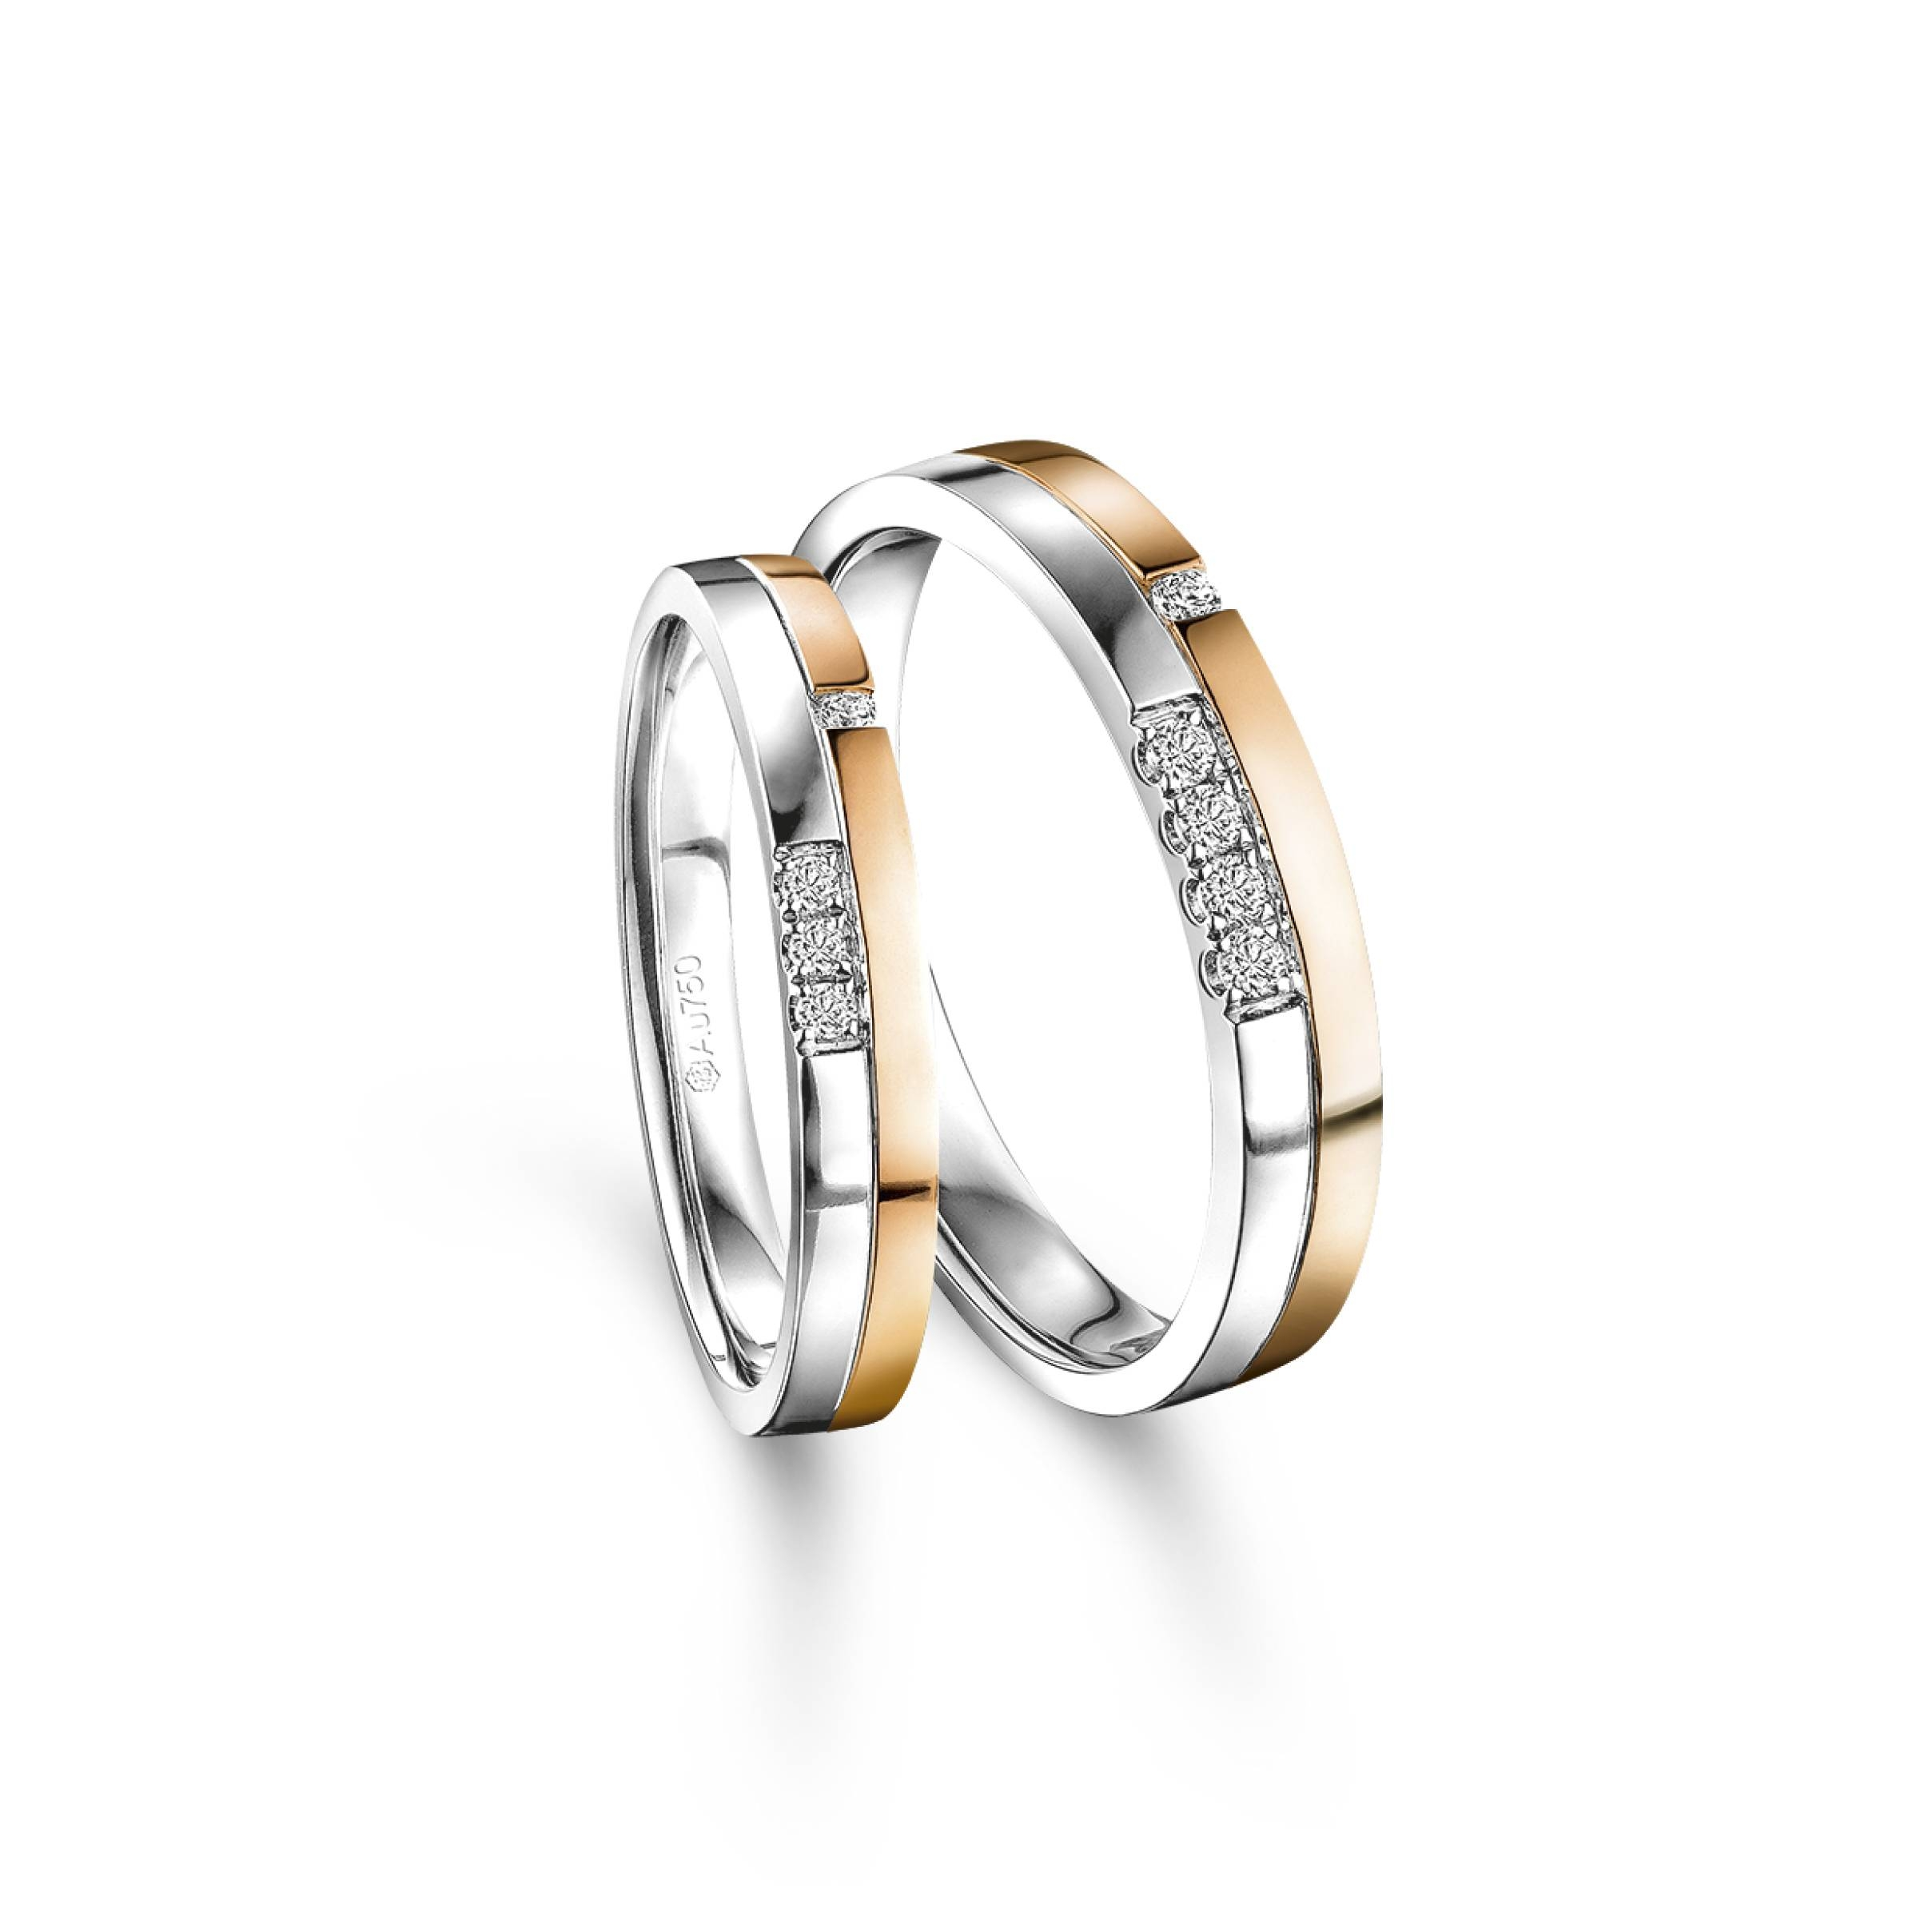 Wedding Collection – Lukfook Jewellery|Lukfook Jewellery Official Intended For Wedding Bands On Necklace (View 11 of 15)